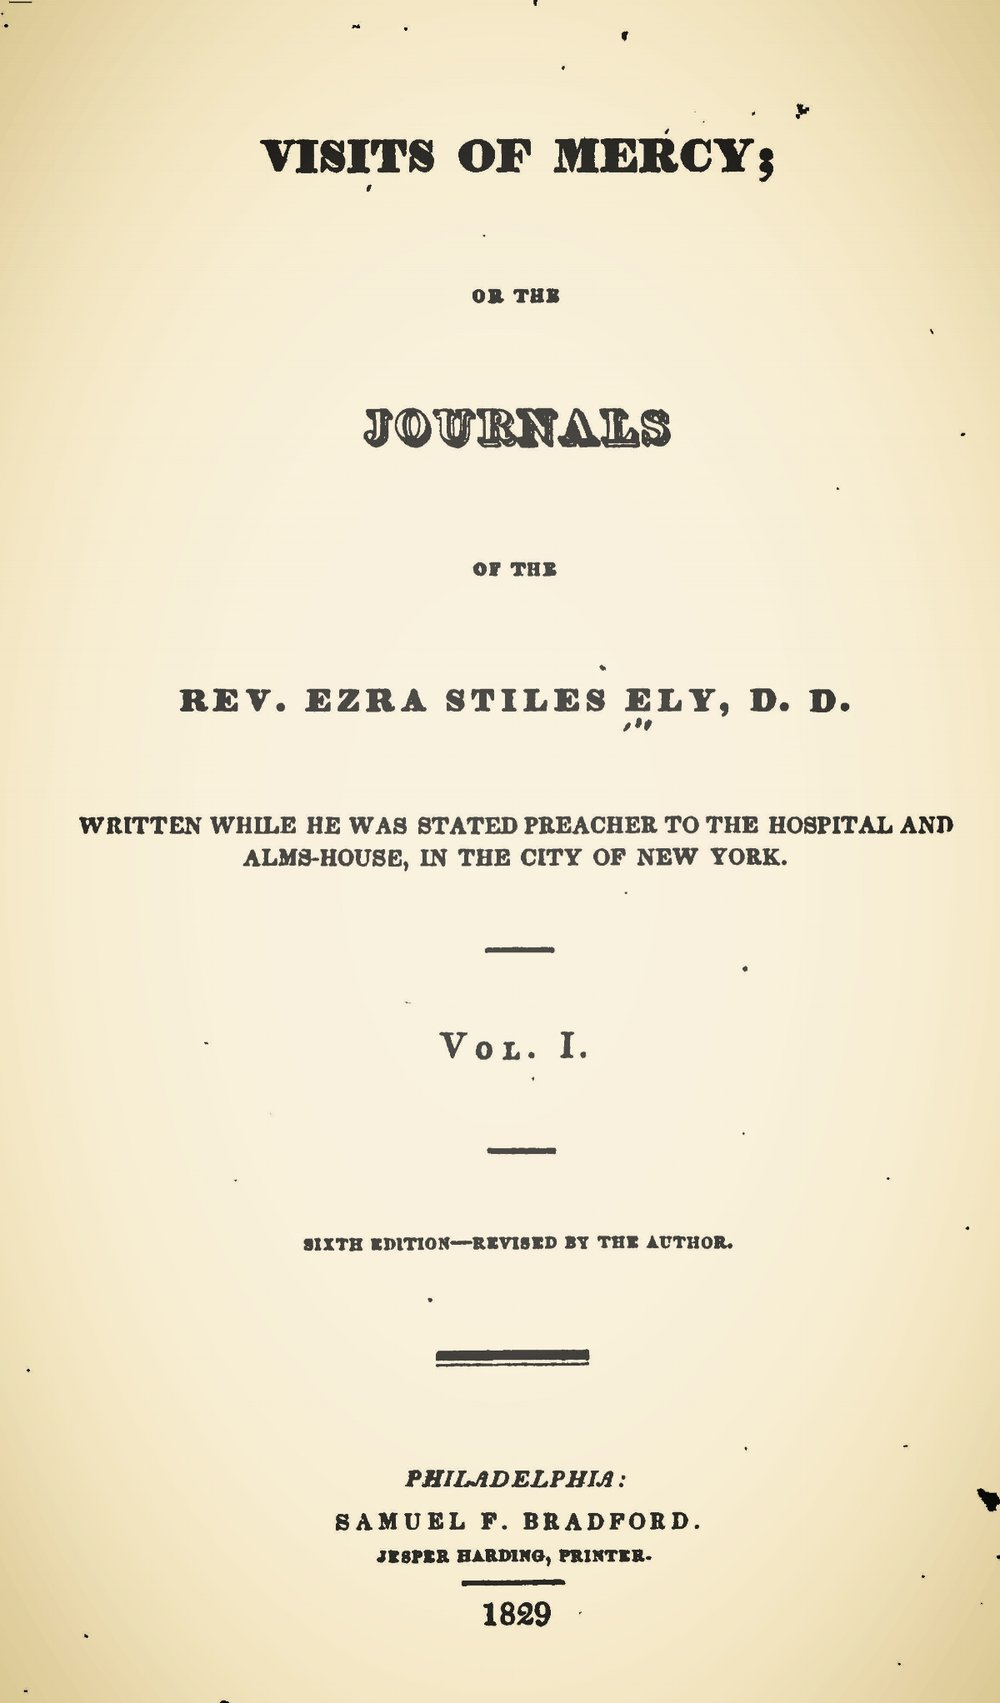 Ely, Ezra Stiles, Visits of Mercy; or, The Journals of Ezra Stiles Ely, D.D., Vol. 1 Title Page.jpg